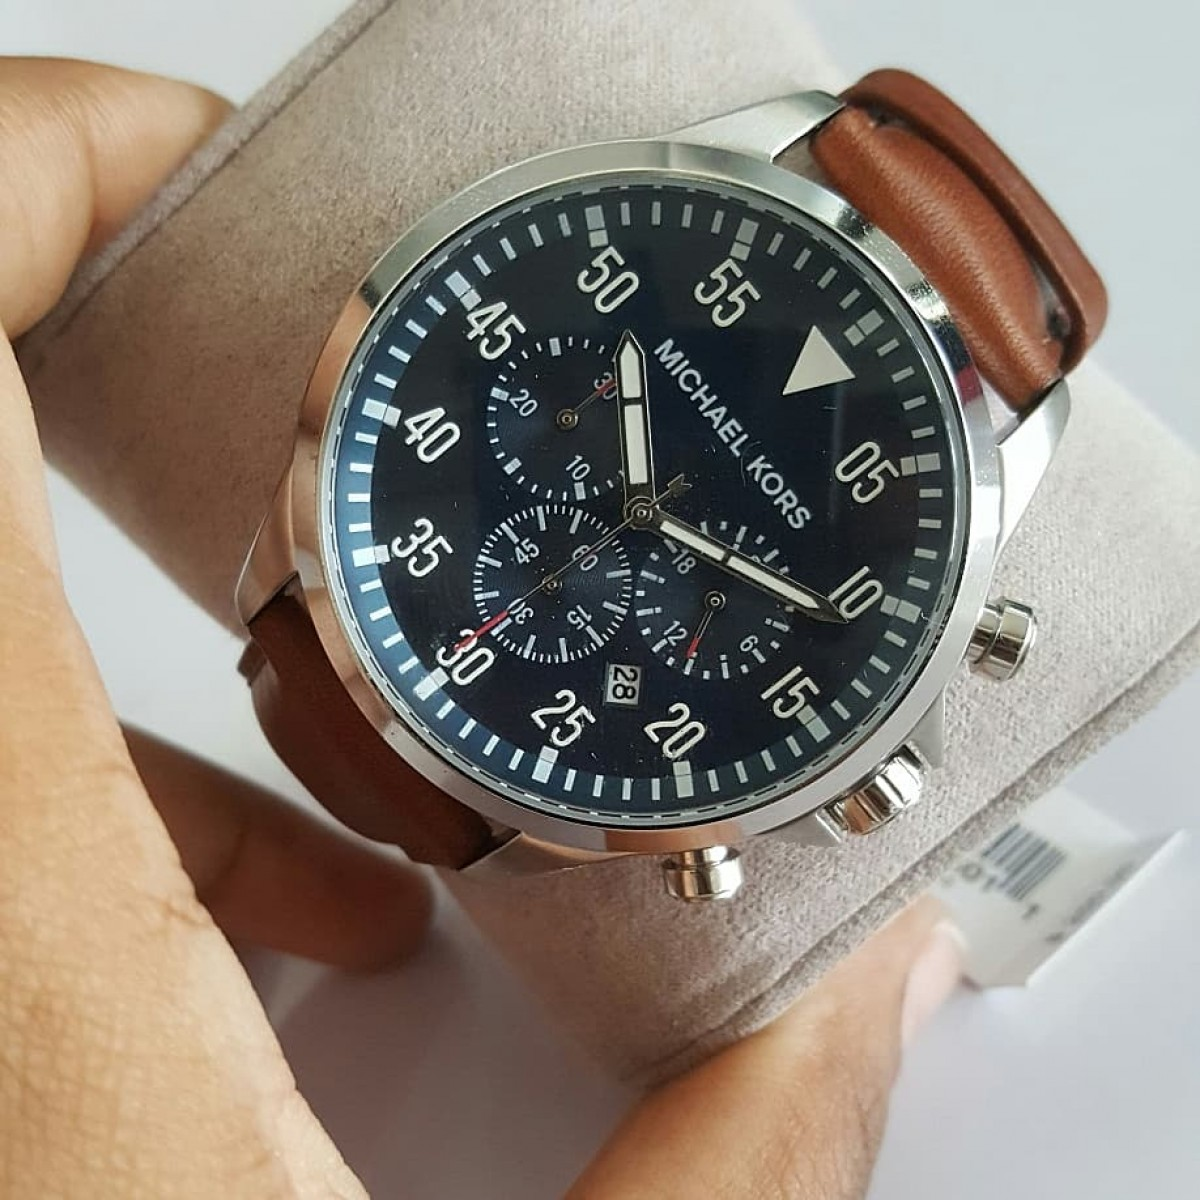 8f12230d4a0e Authentic Michael Kors men's gage brown watch for sale in Portmore ...